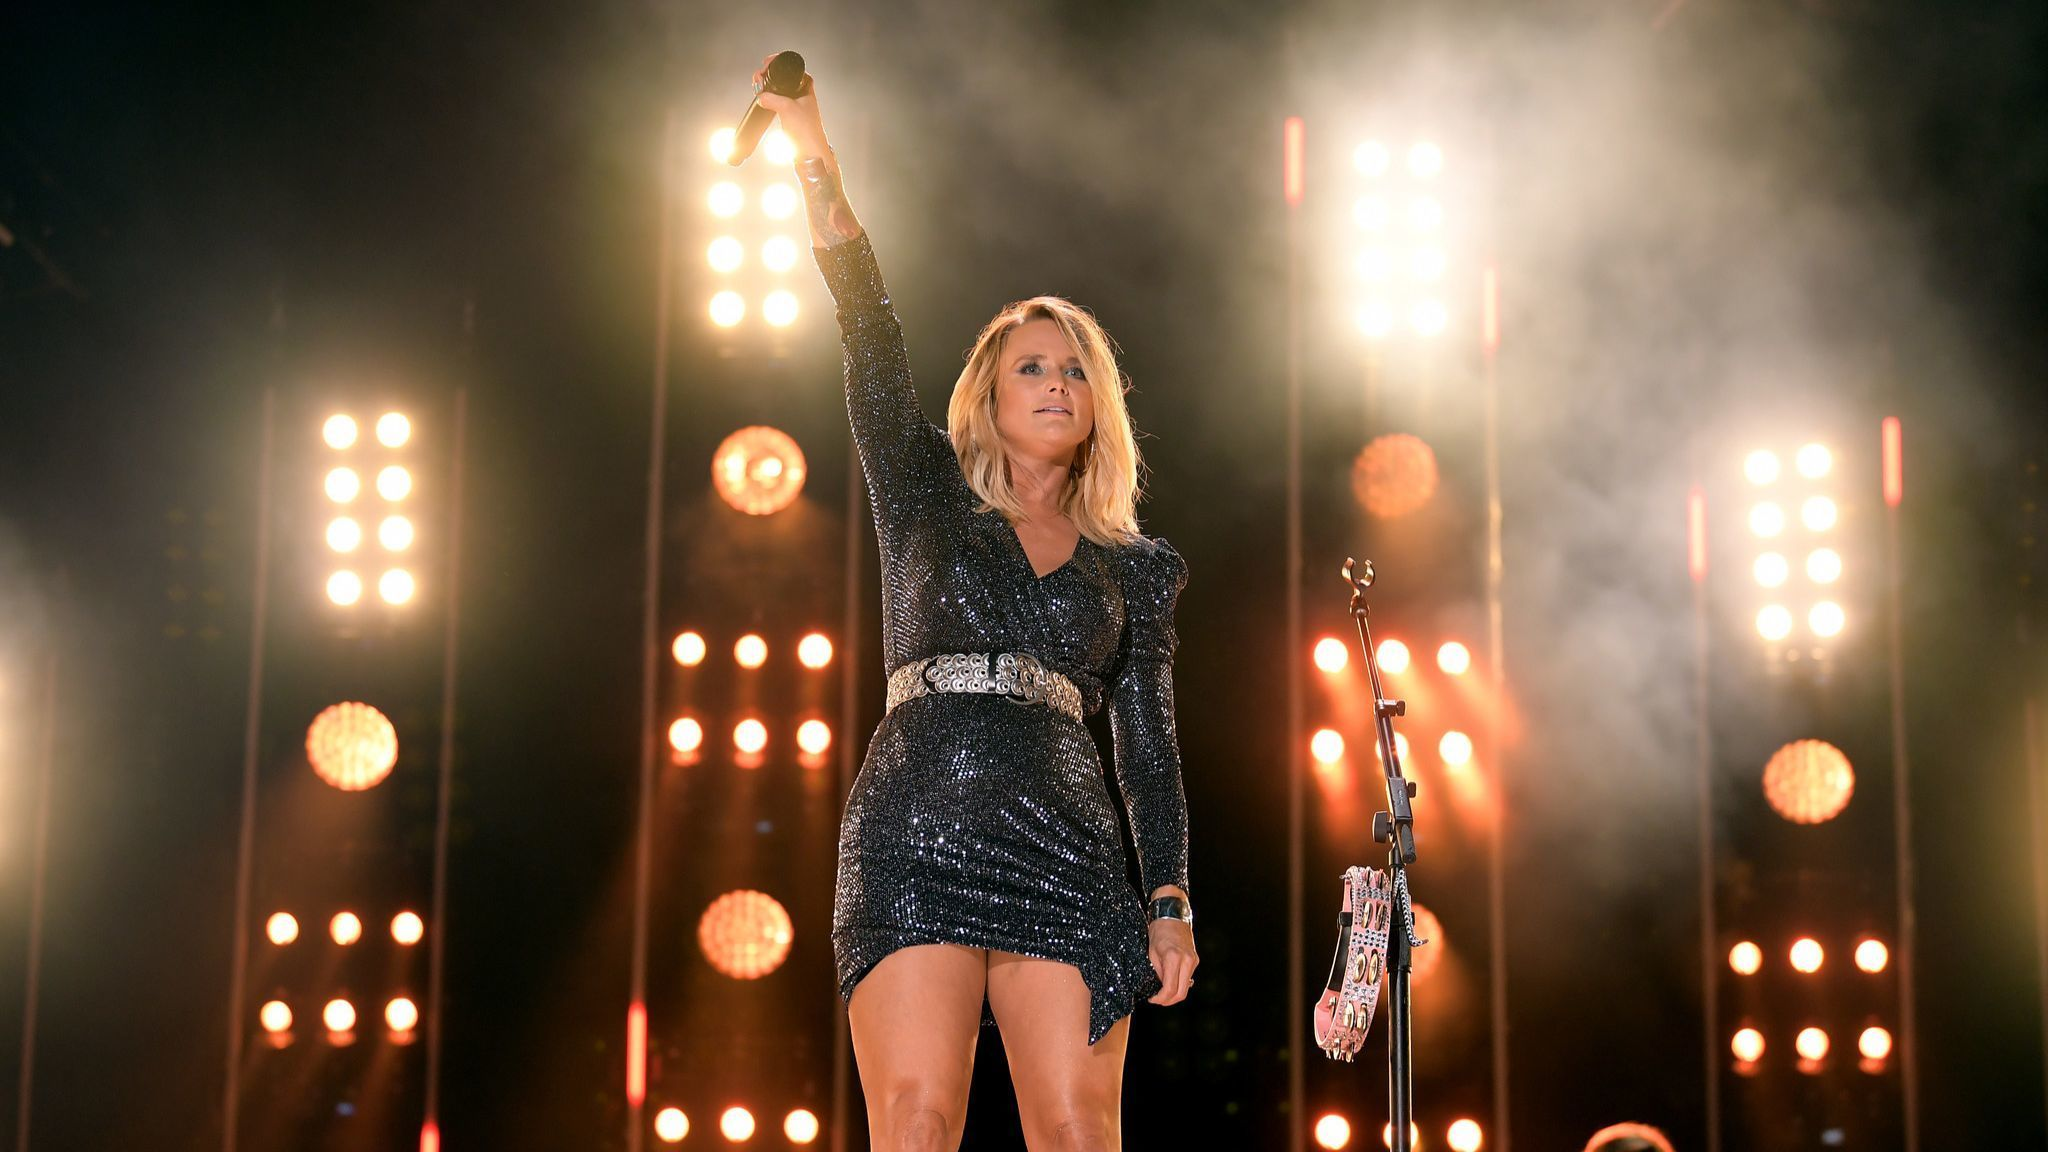 The greatest country music artist ever ... is not a dude